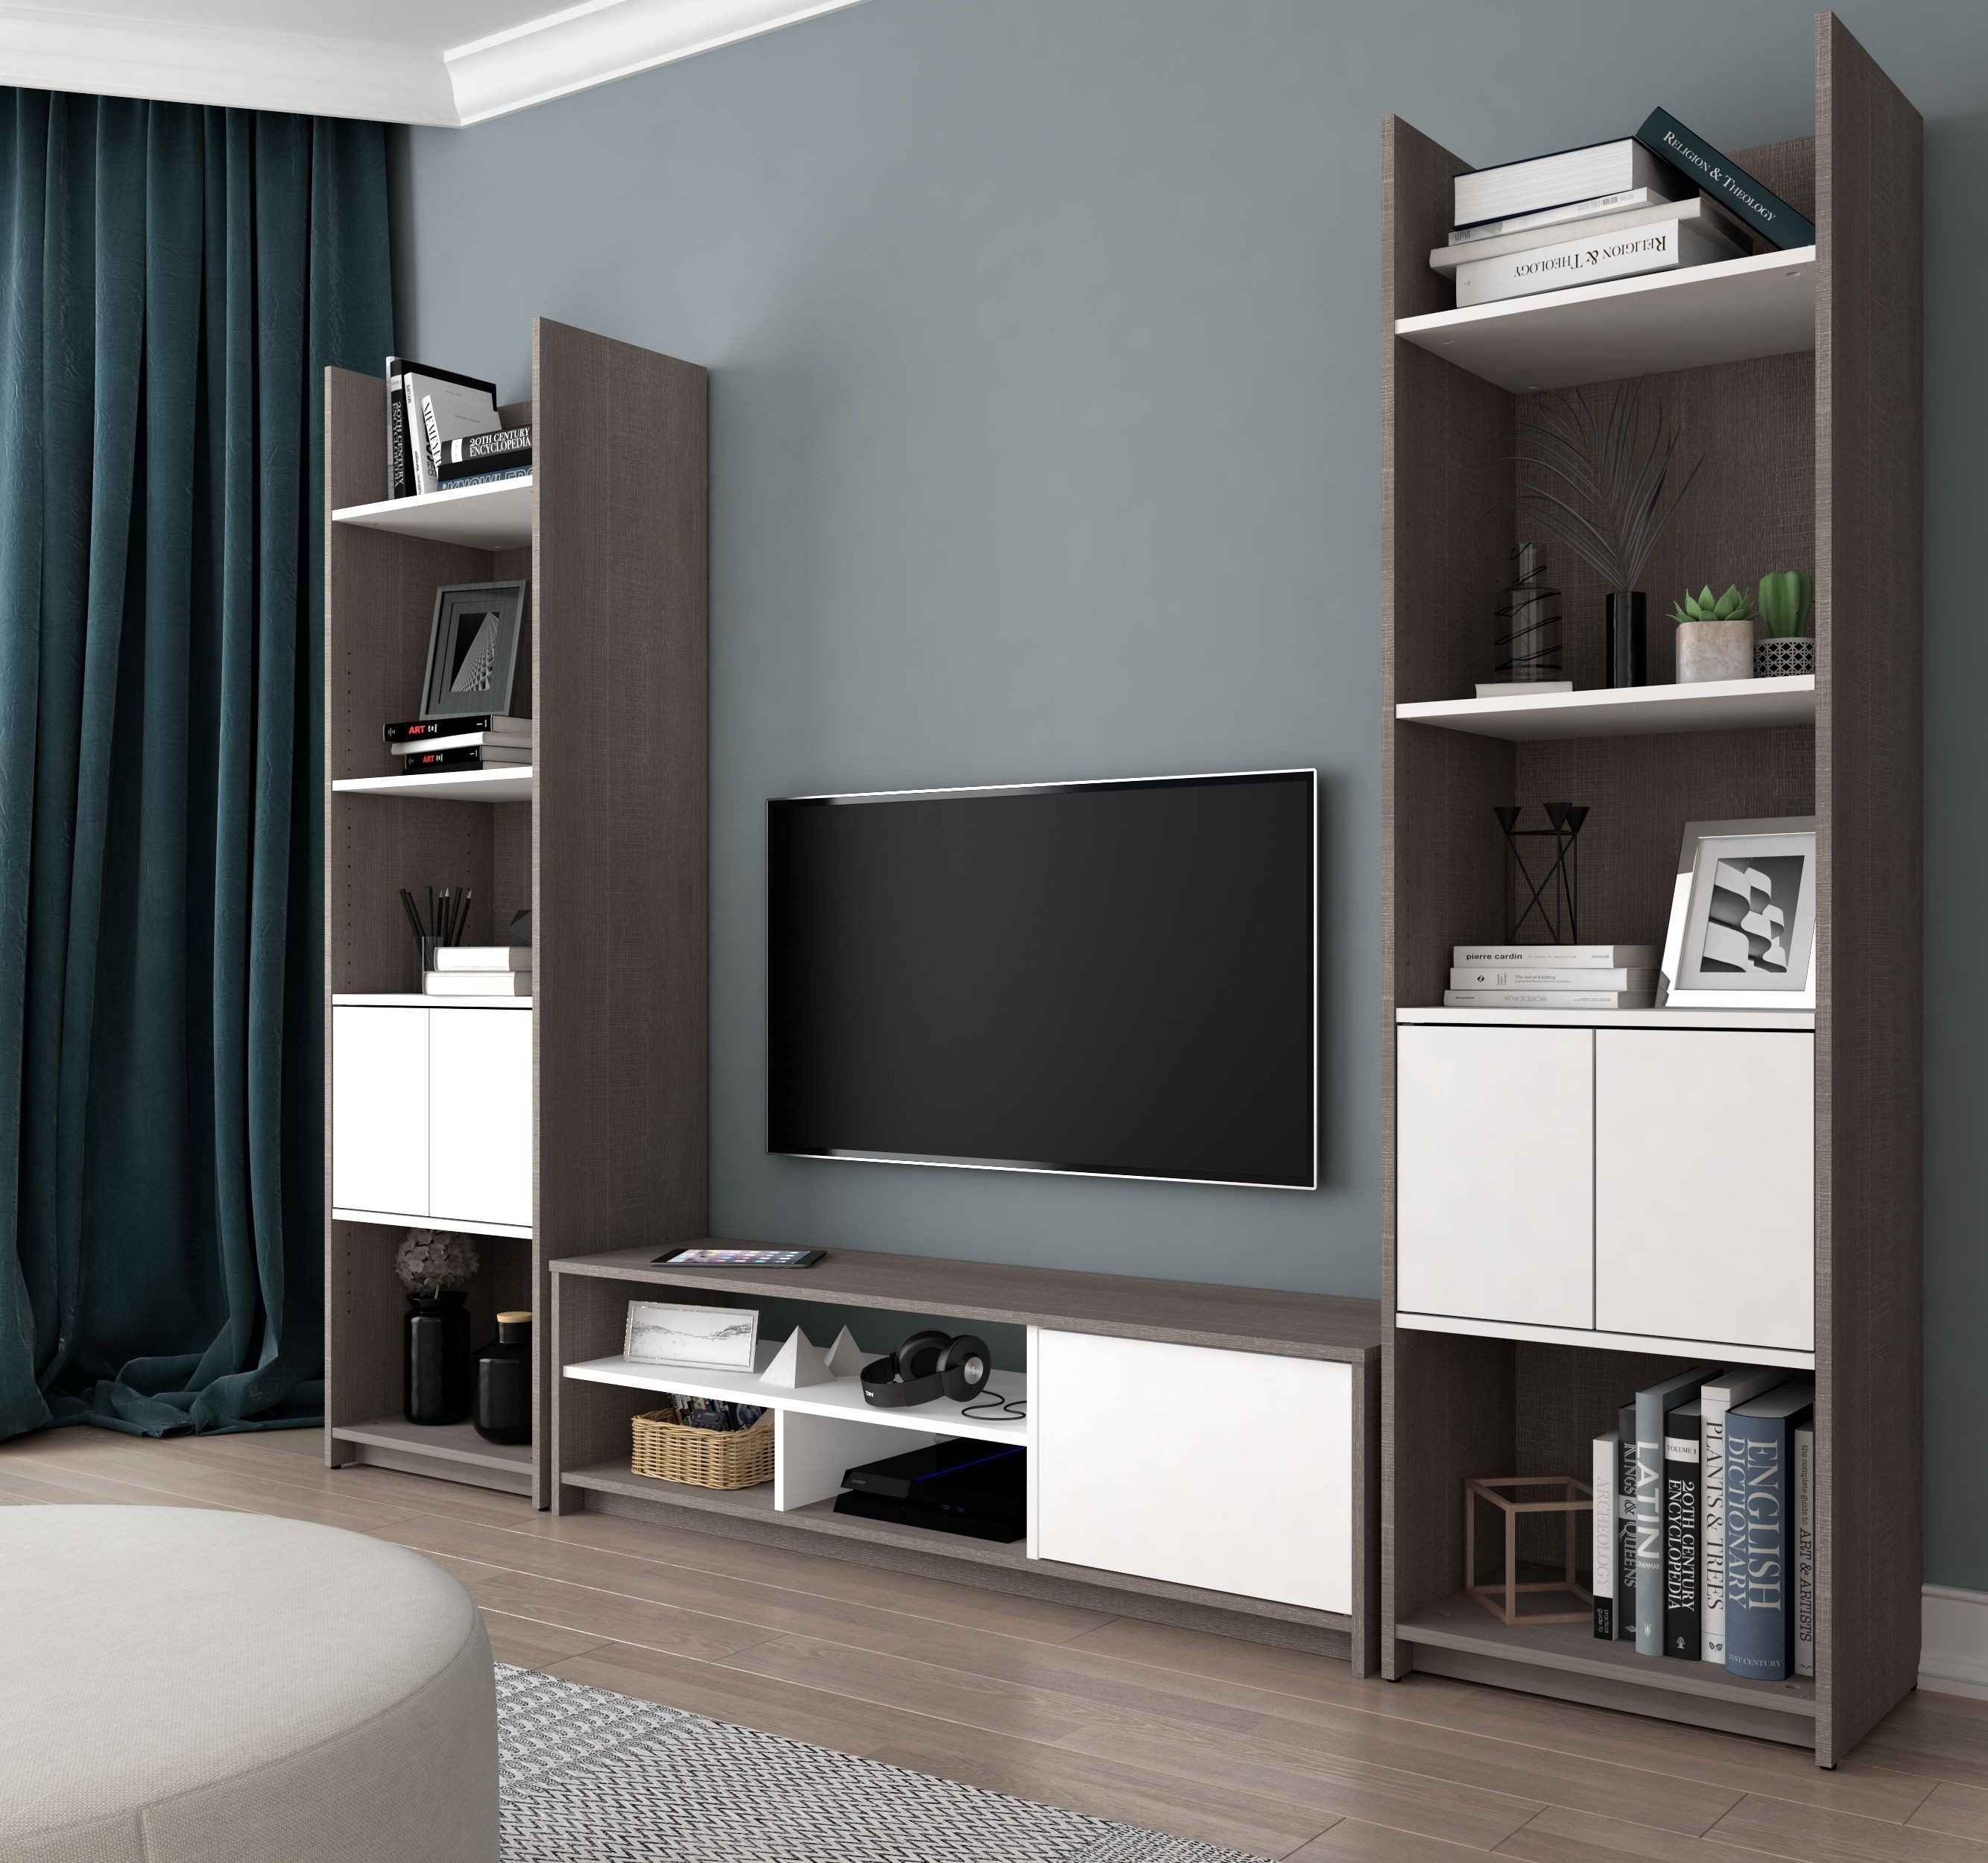 Bestar Small Space Bark Gray And White Tv Stand With 2 Storage